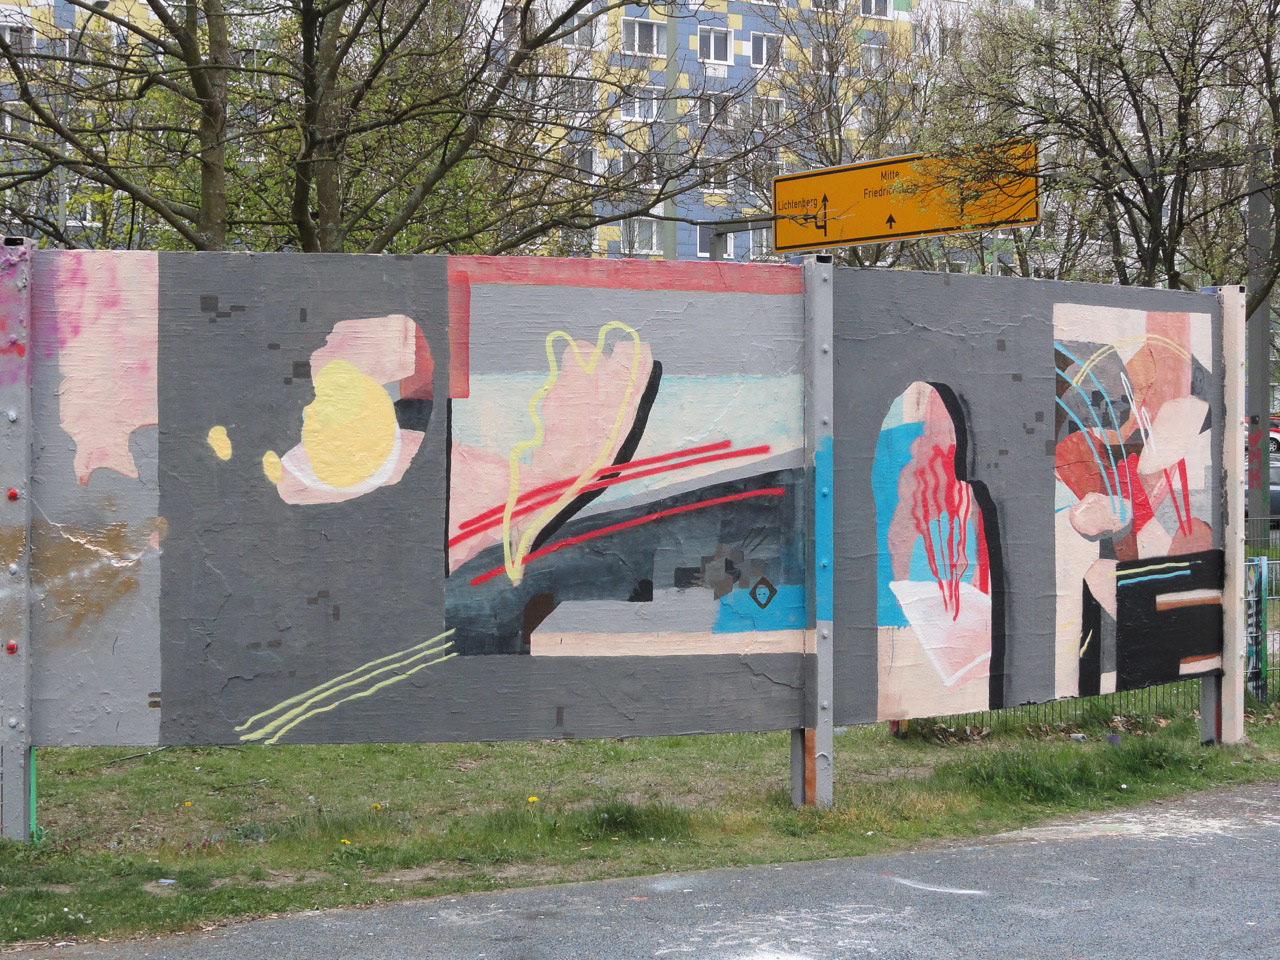 johannes-mundinger-new-murals-in-germany-04